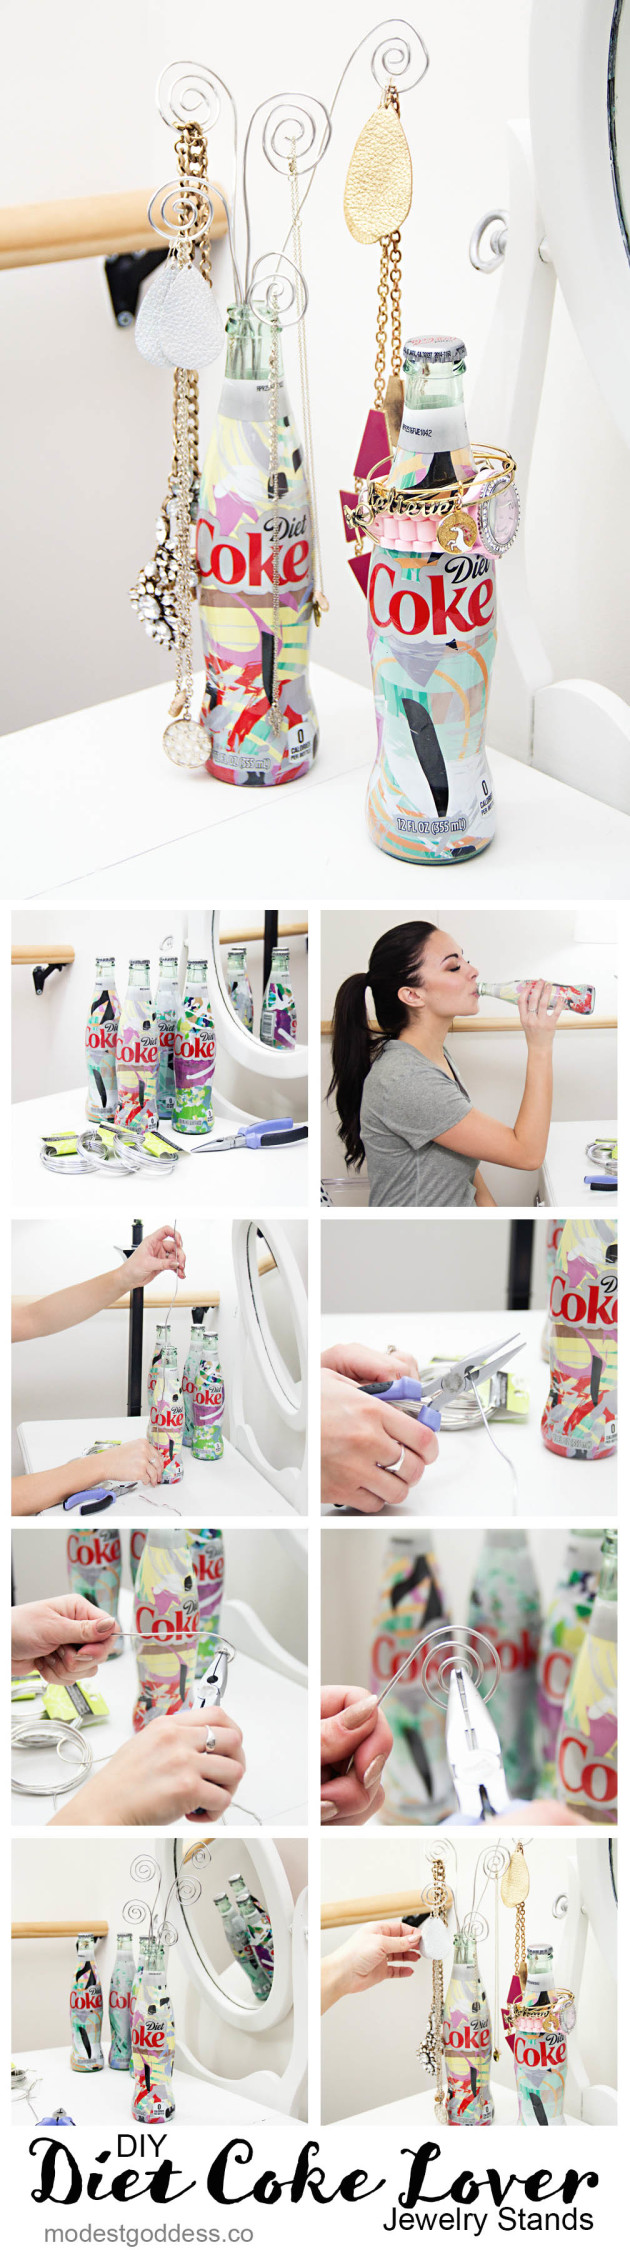 Fashion blogger Modest Goddess gives a tutorial of how to make DIY jewelry displays out of Diet Coke bottles.